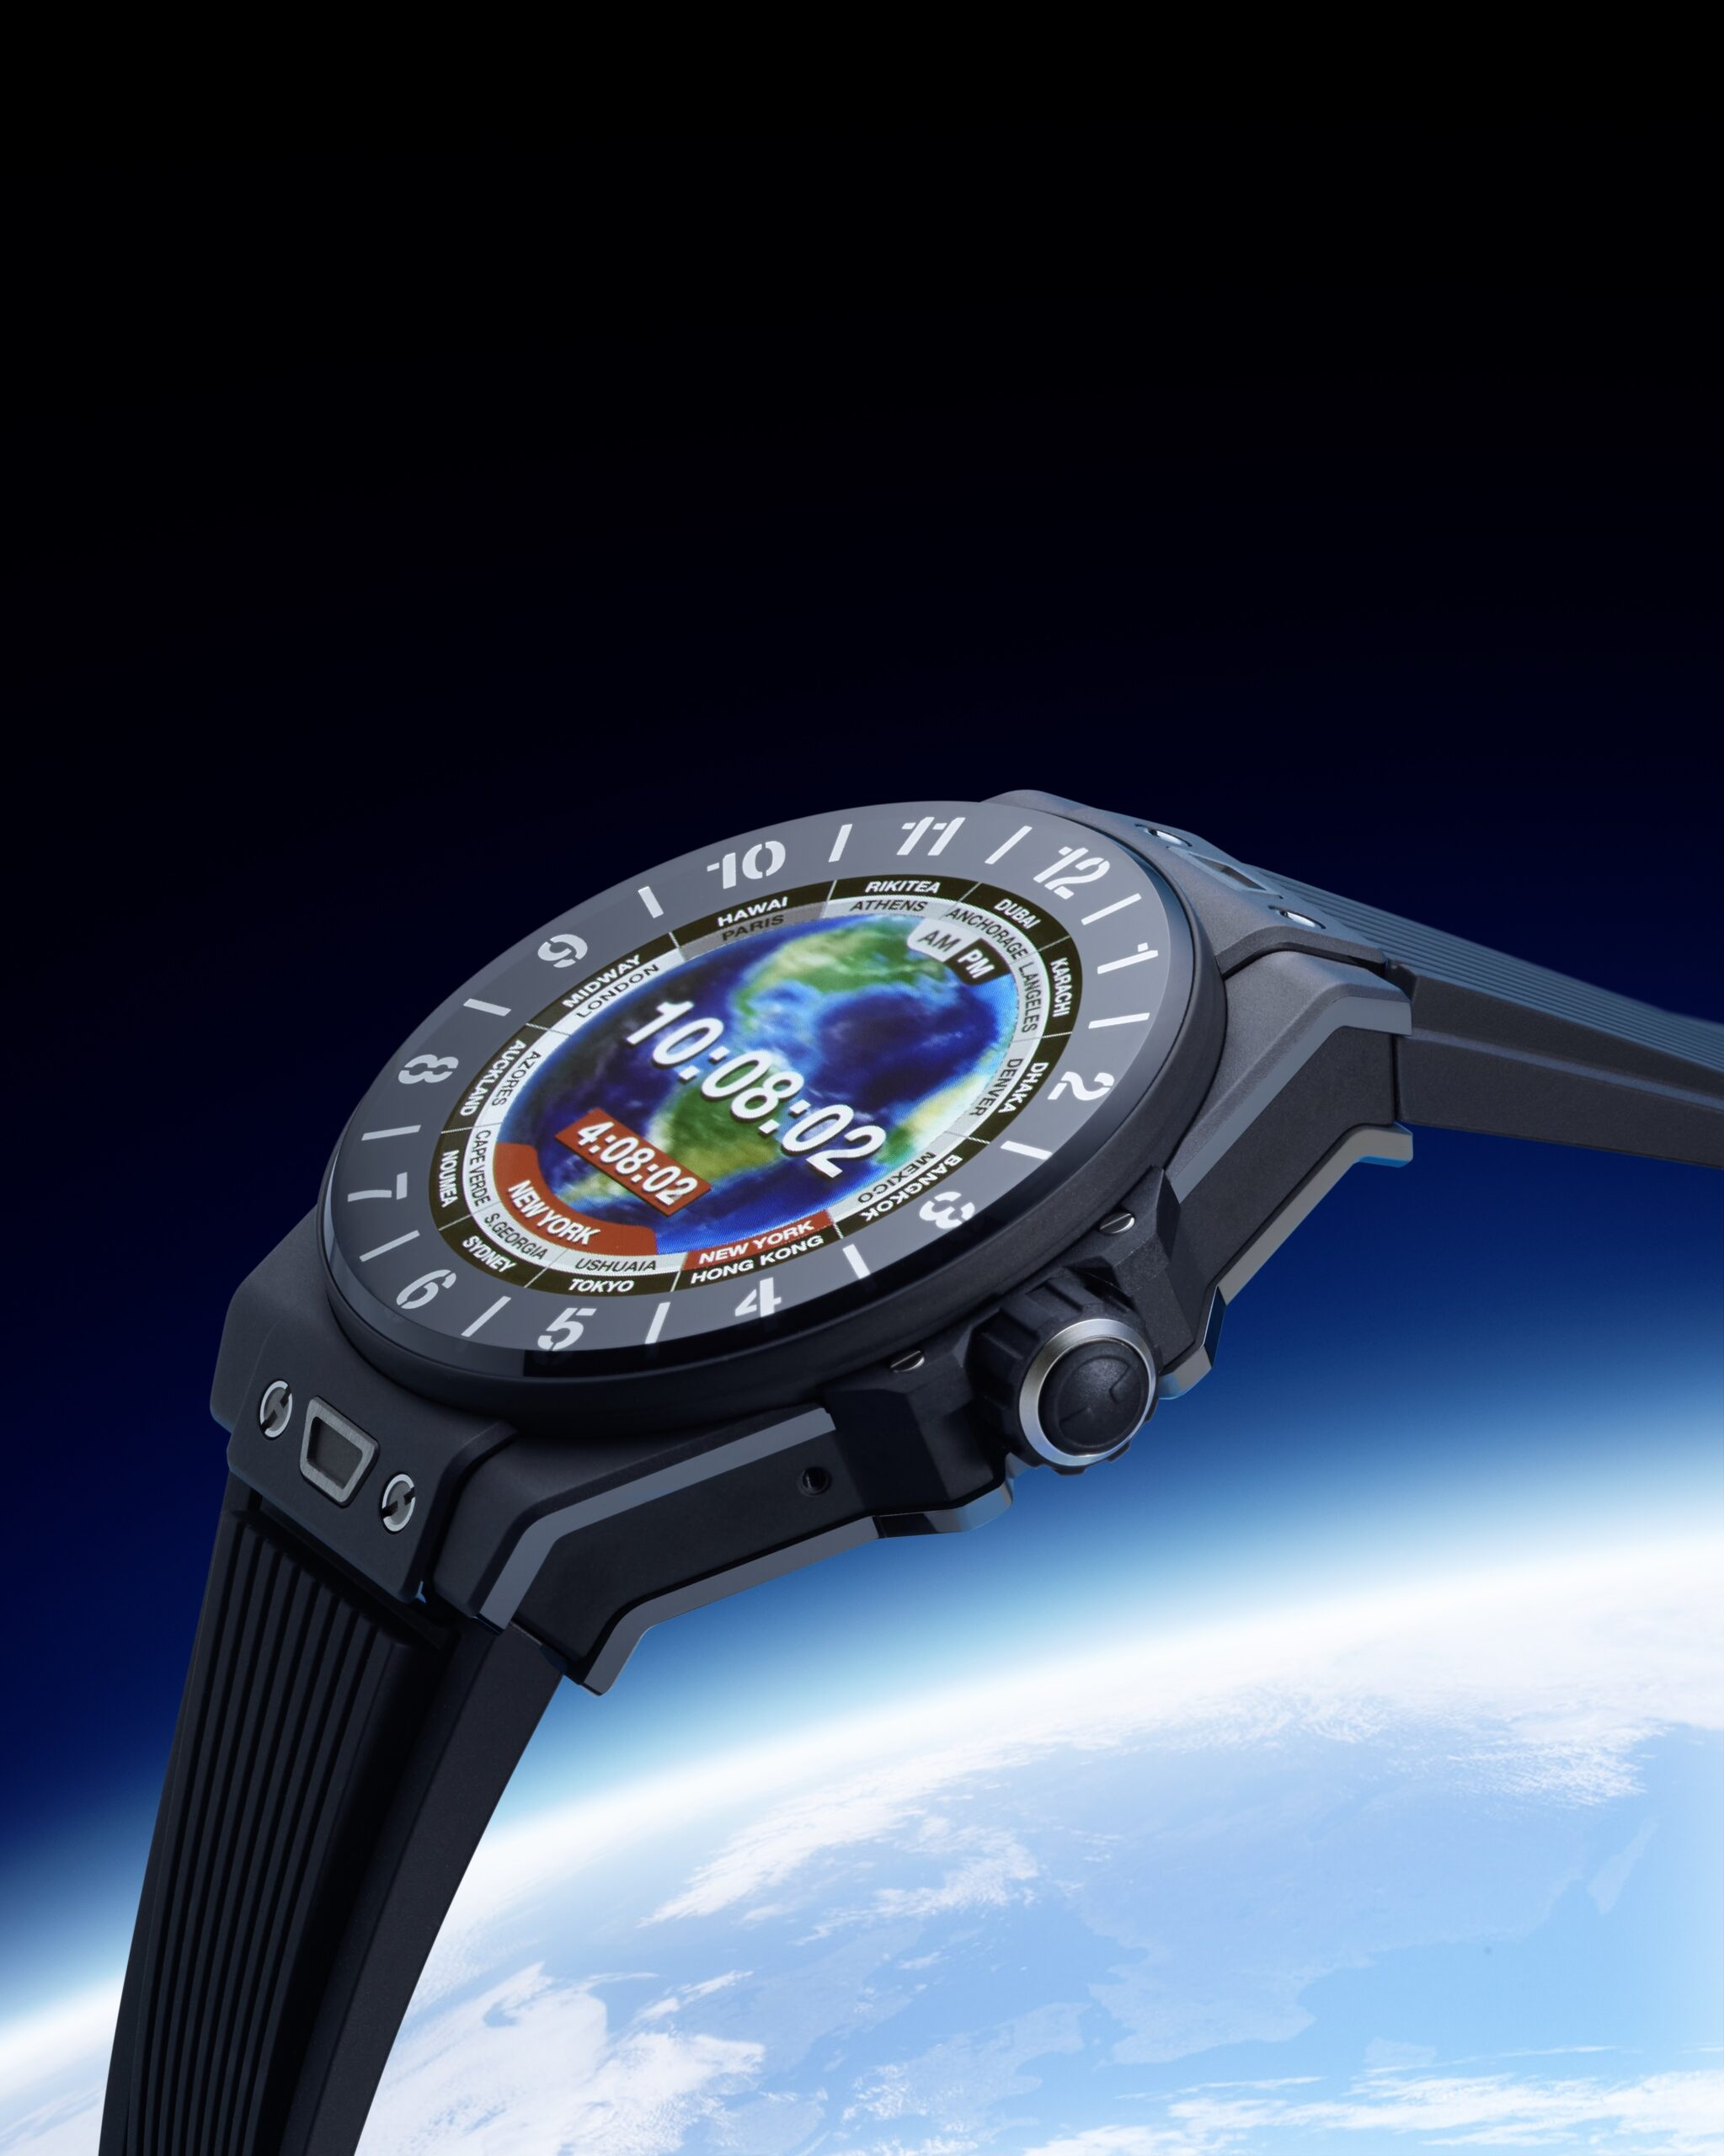 Why Swiss smartwatches are on a different planet from Apple